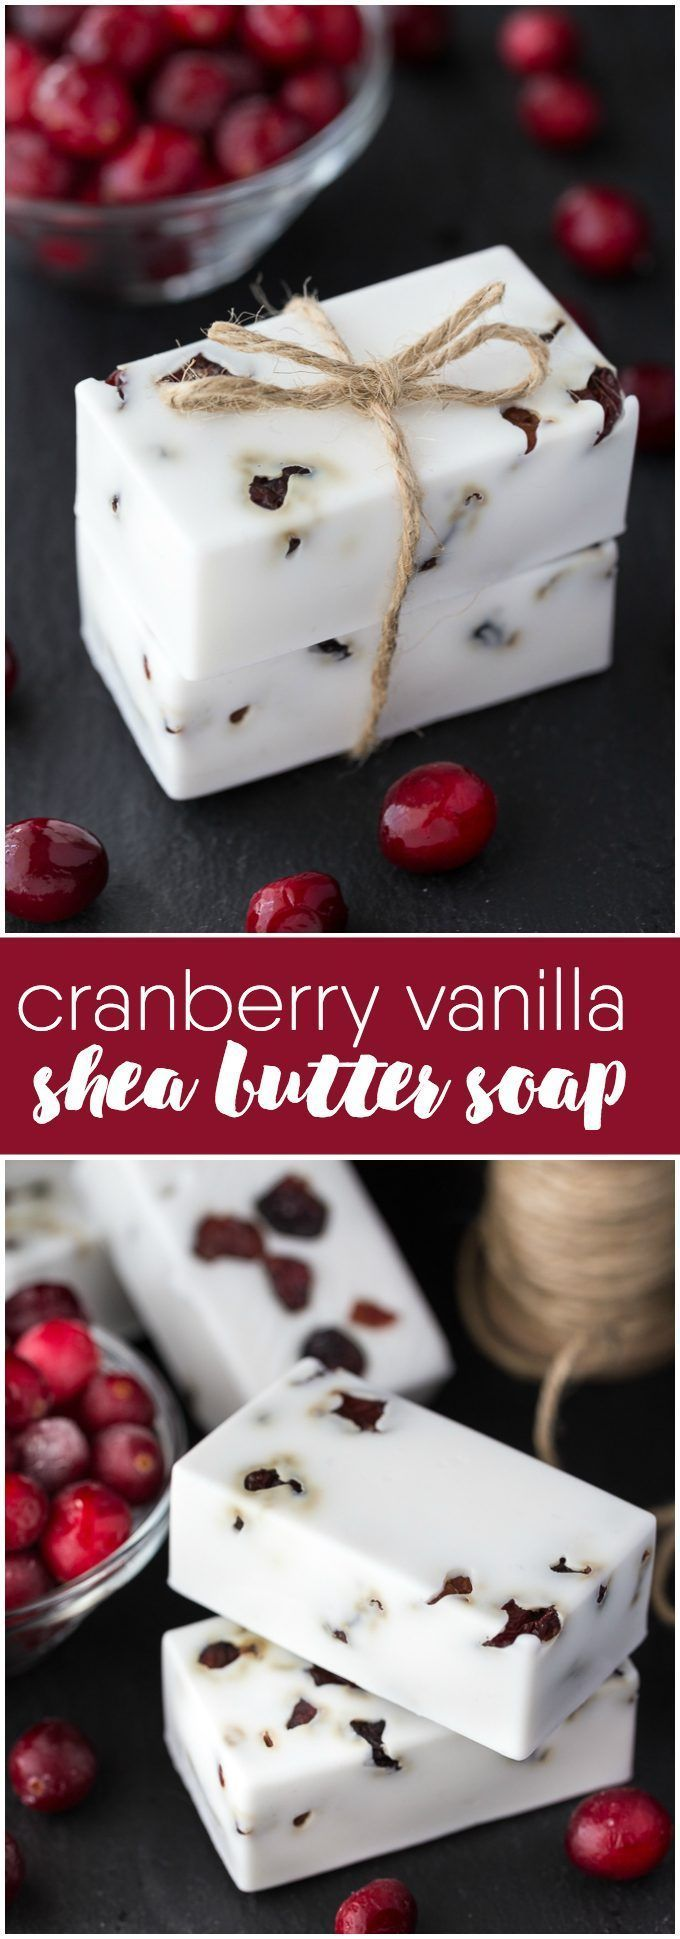 Make your own DIY soap perfect for holiday gift giving. This Cranberry Vanilla Shea Butter Soap smells amazing and looks impressive too.